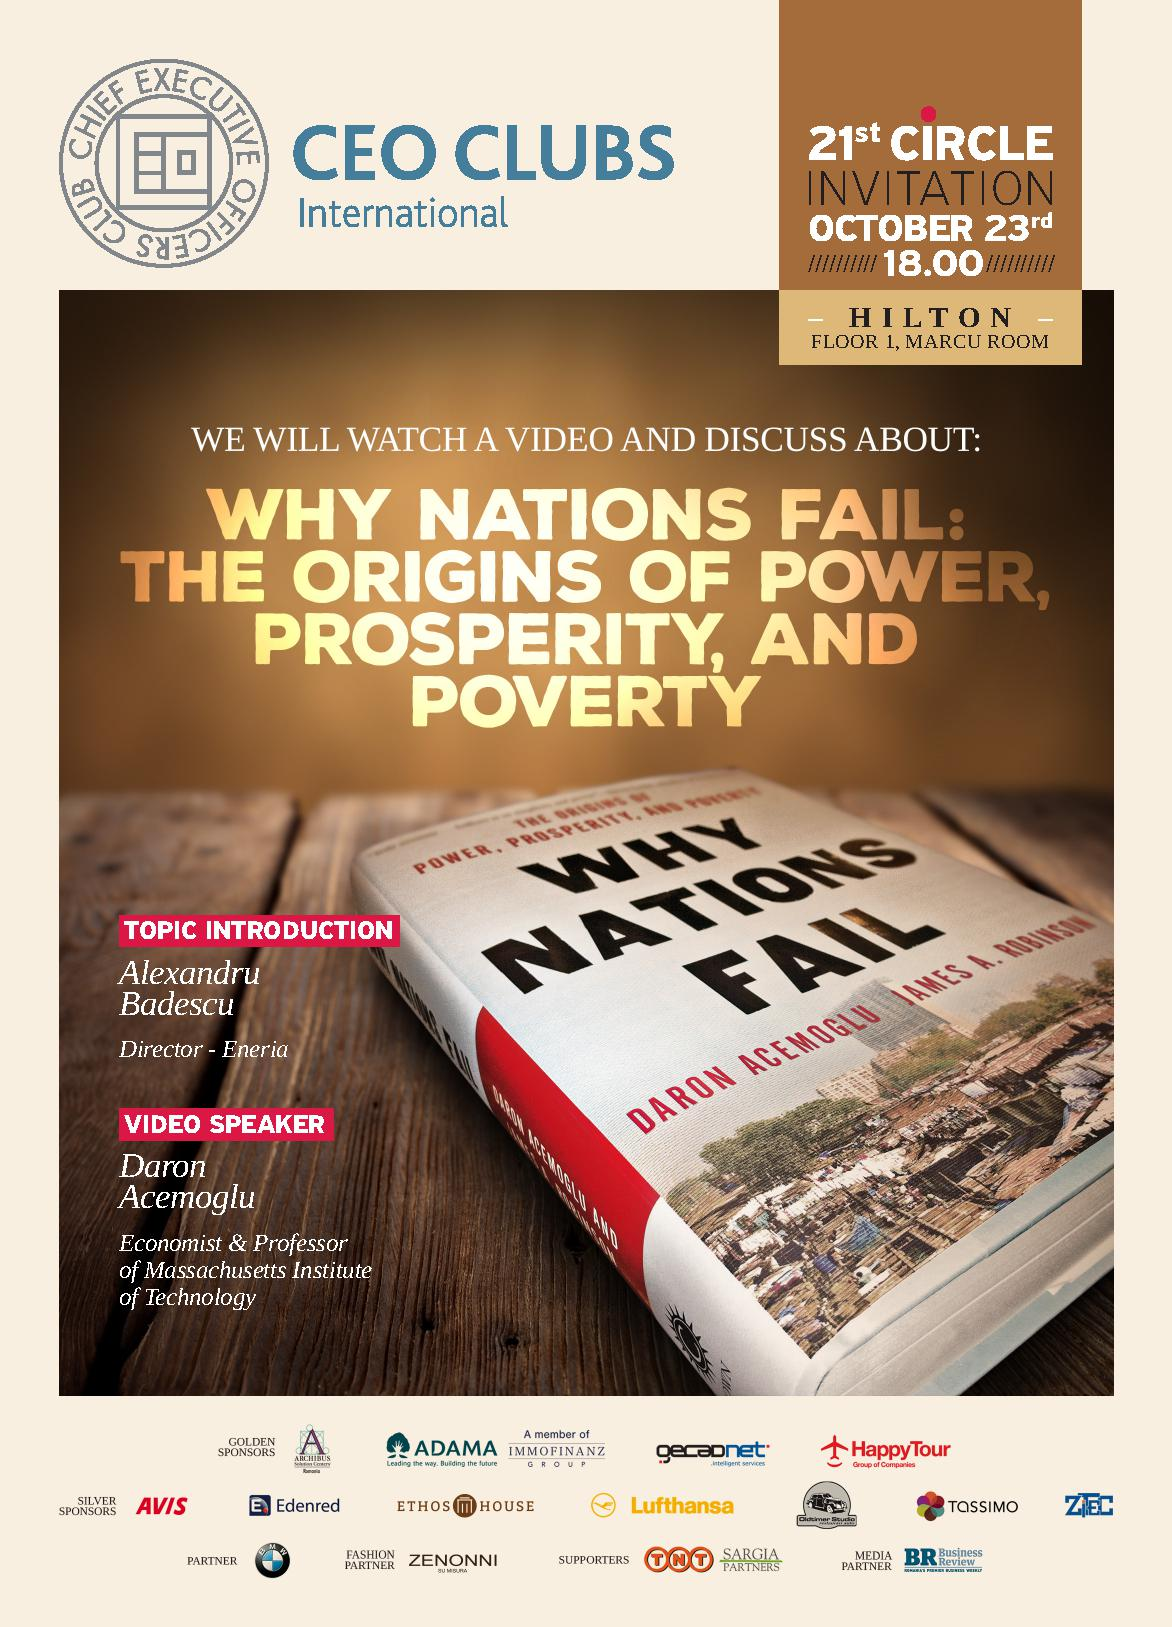 21st Circle: Why Nations Fail: The origins of Power, Prosperity and Poverty